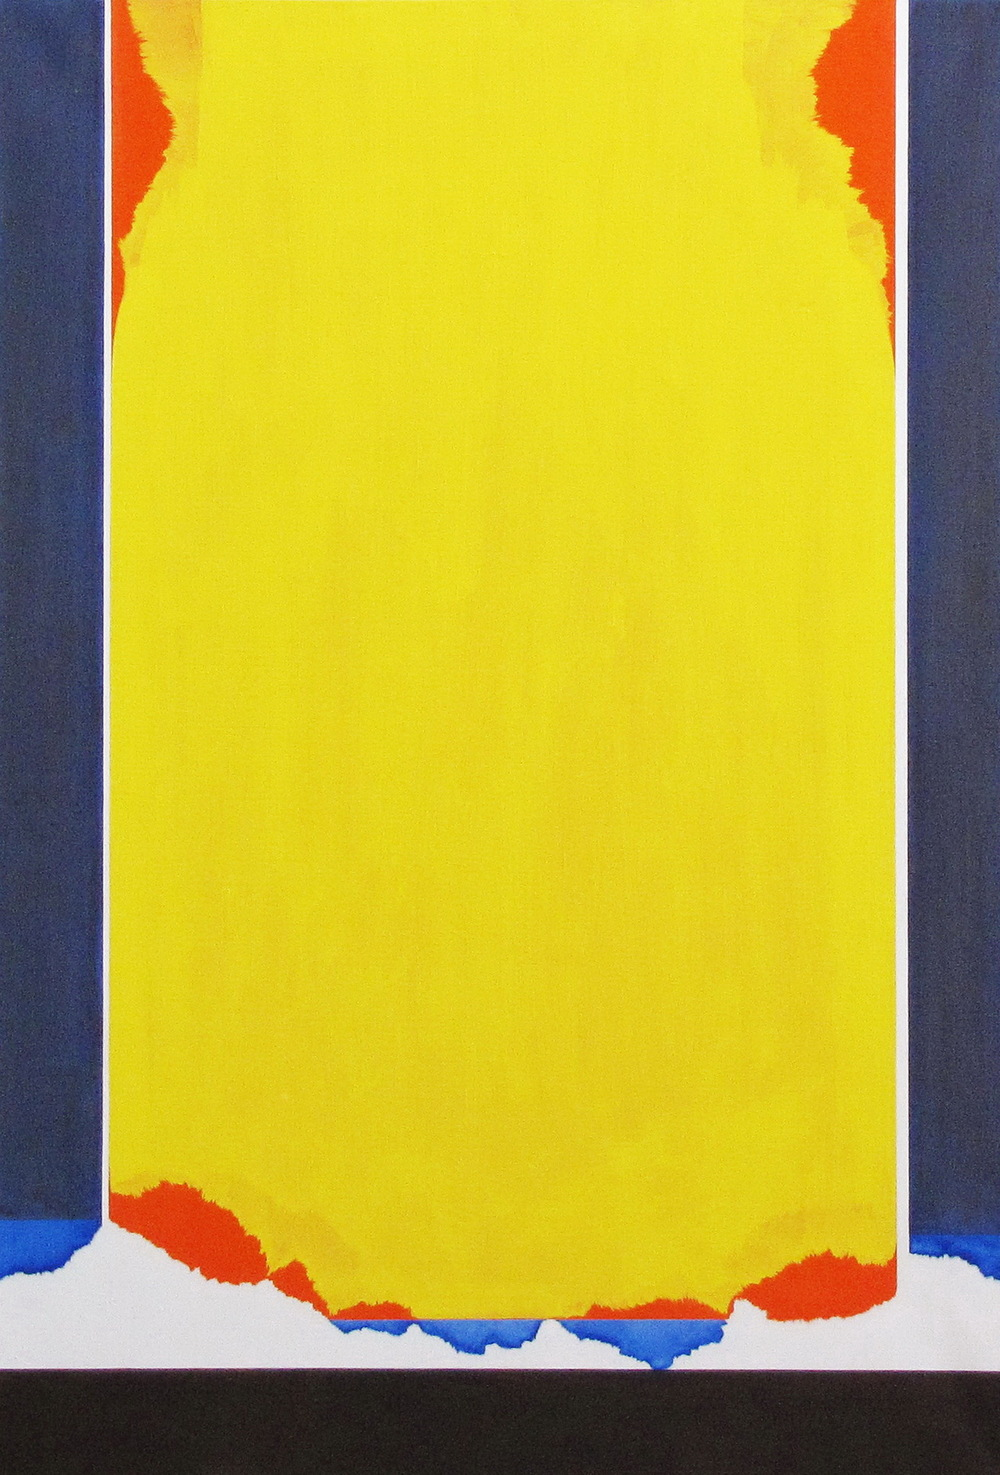 Untitled, 2011, Oil on Canvas, 56 x 38 inch, (142,5 x 97,5 cm)